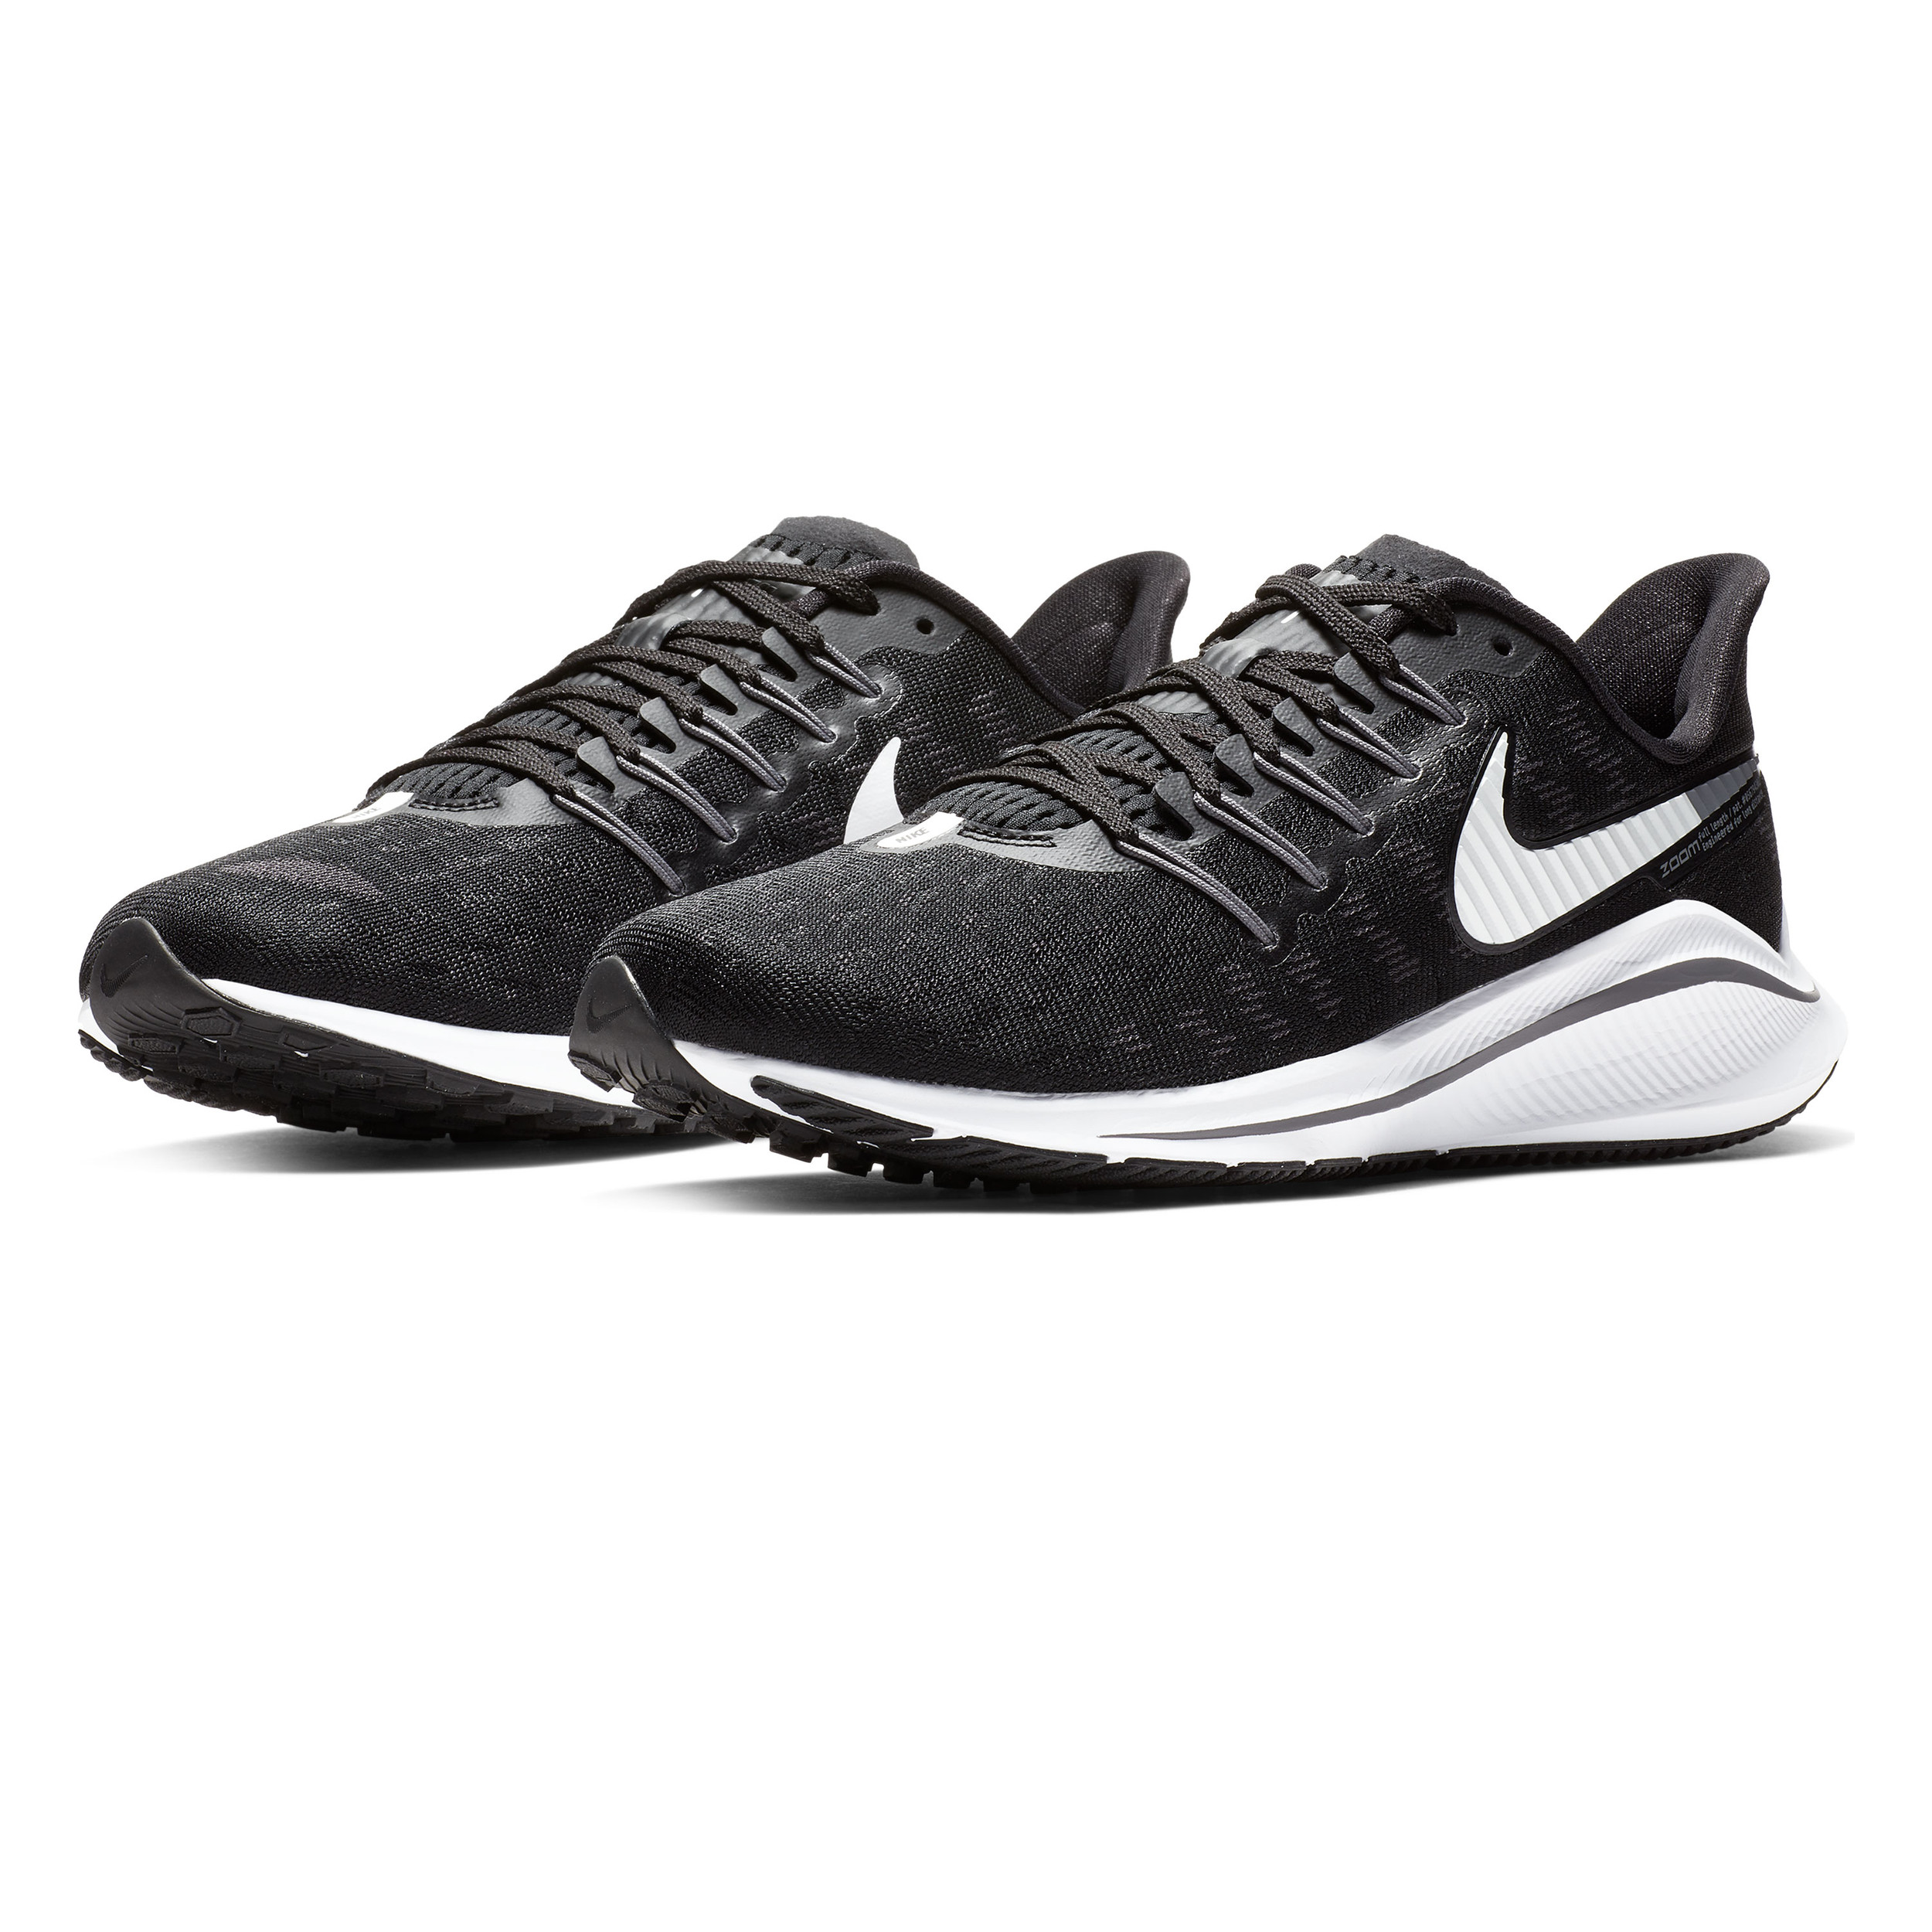 Nike Air Zoom Vomero 14 Women's Running Shoes - SP20